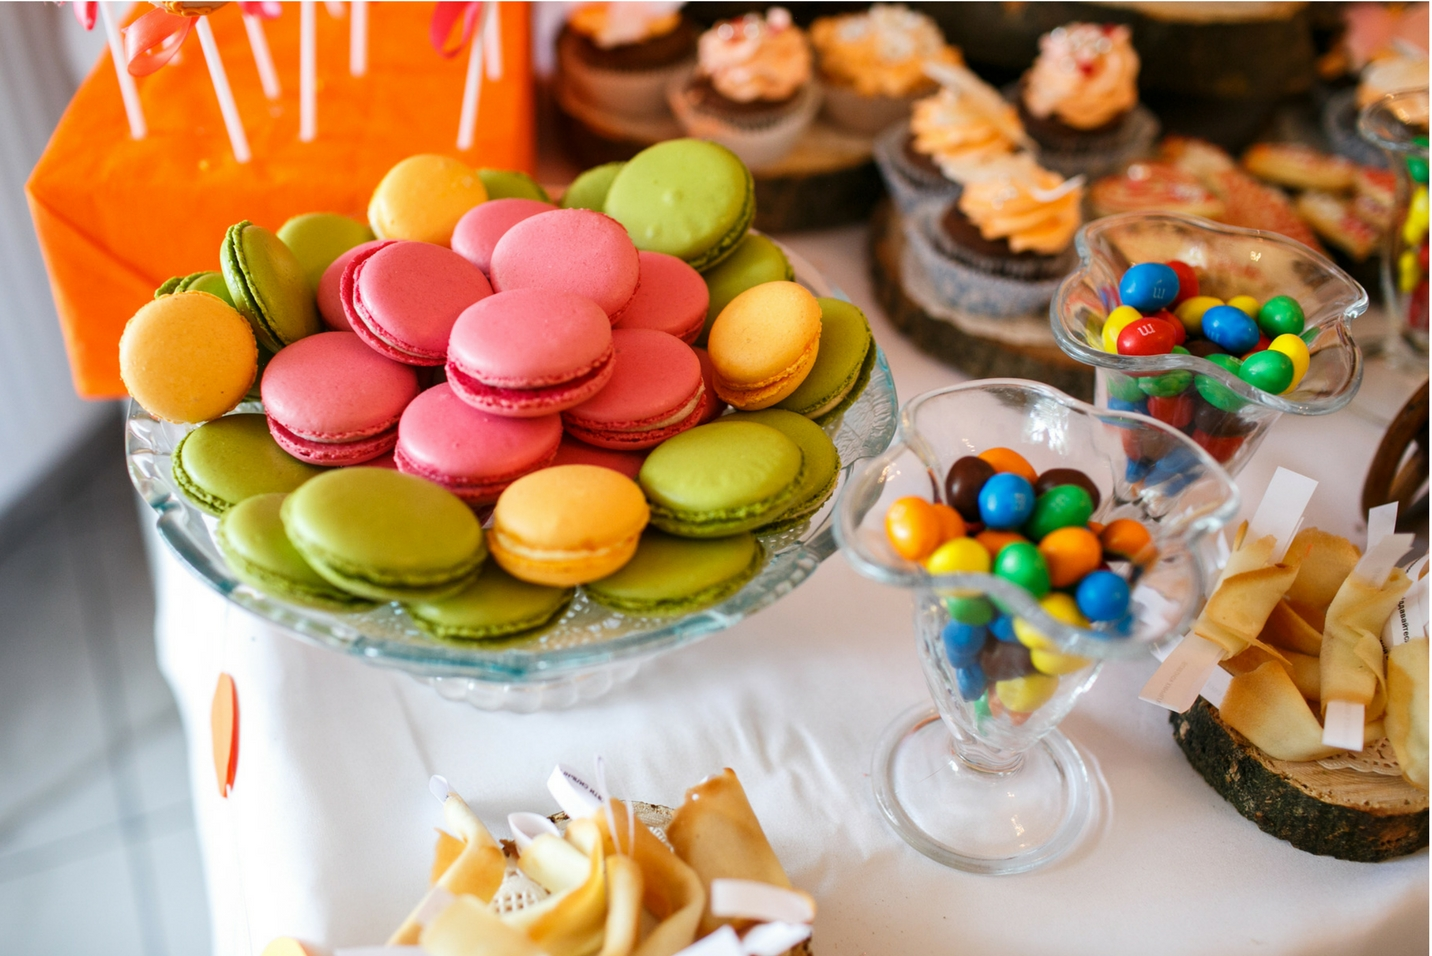 Candy, cookies and treats on table at party